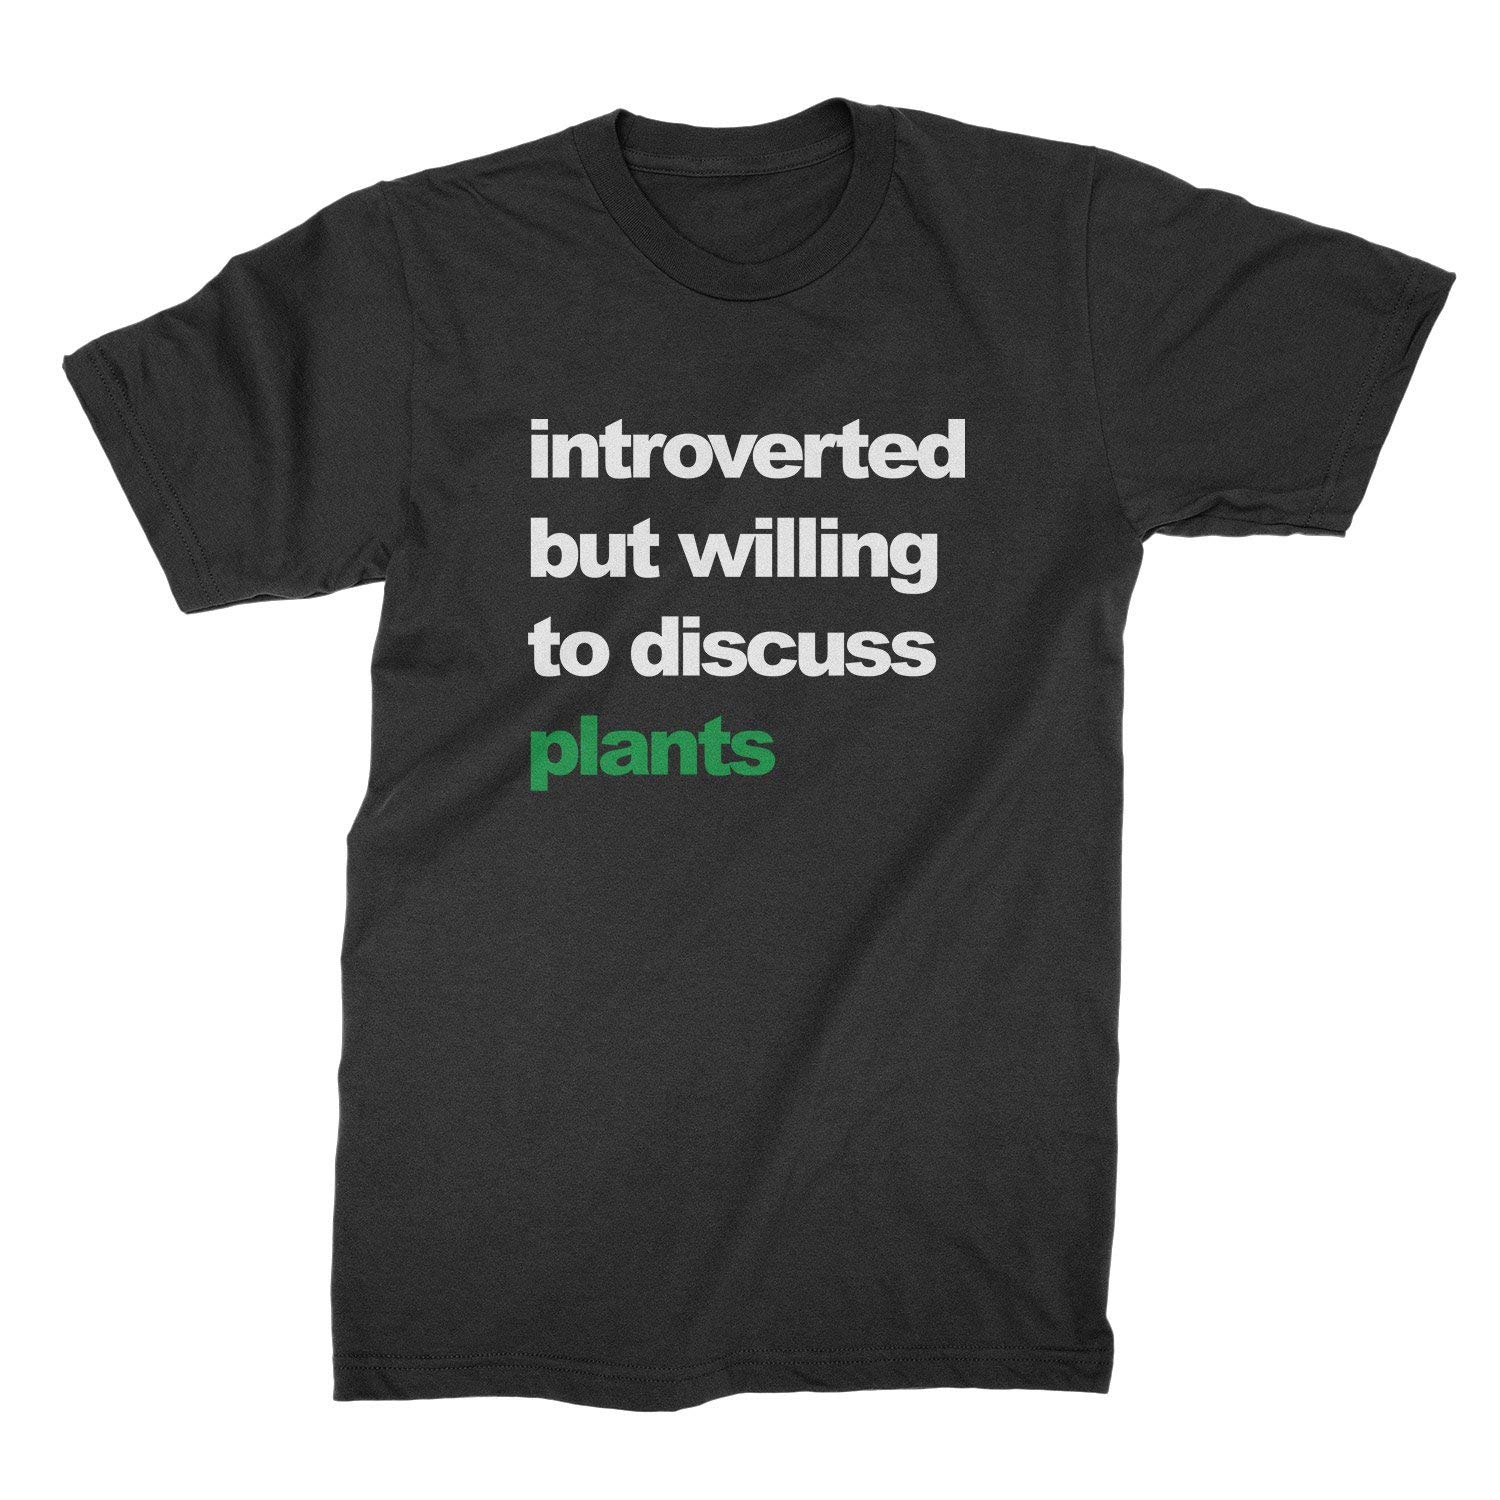 We Got Good Introverted But Willing To Discuss Plants Shirt Funny Plant Shirts